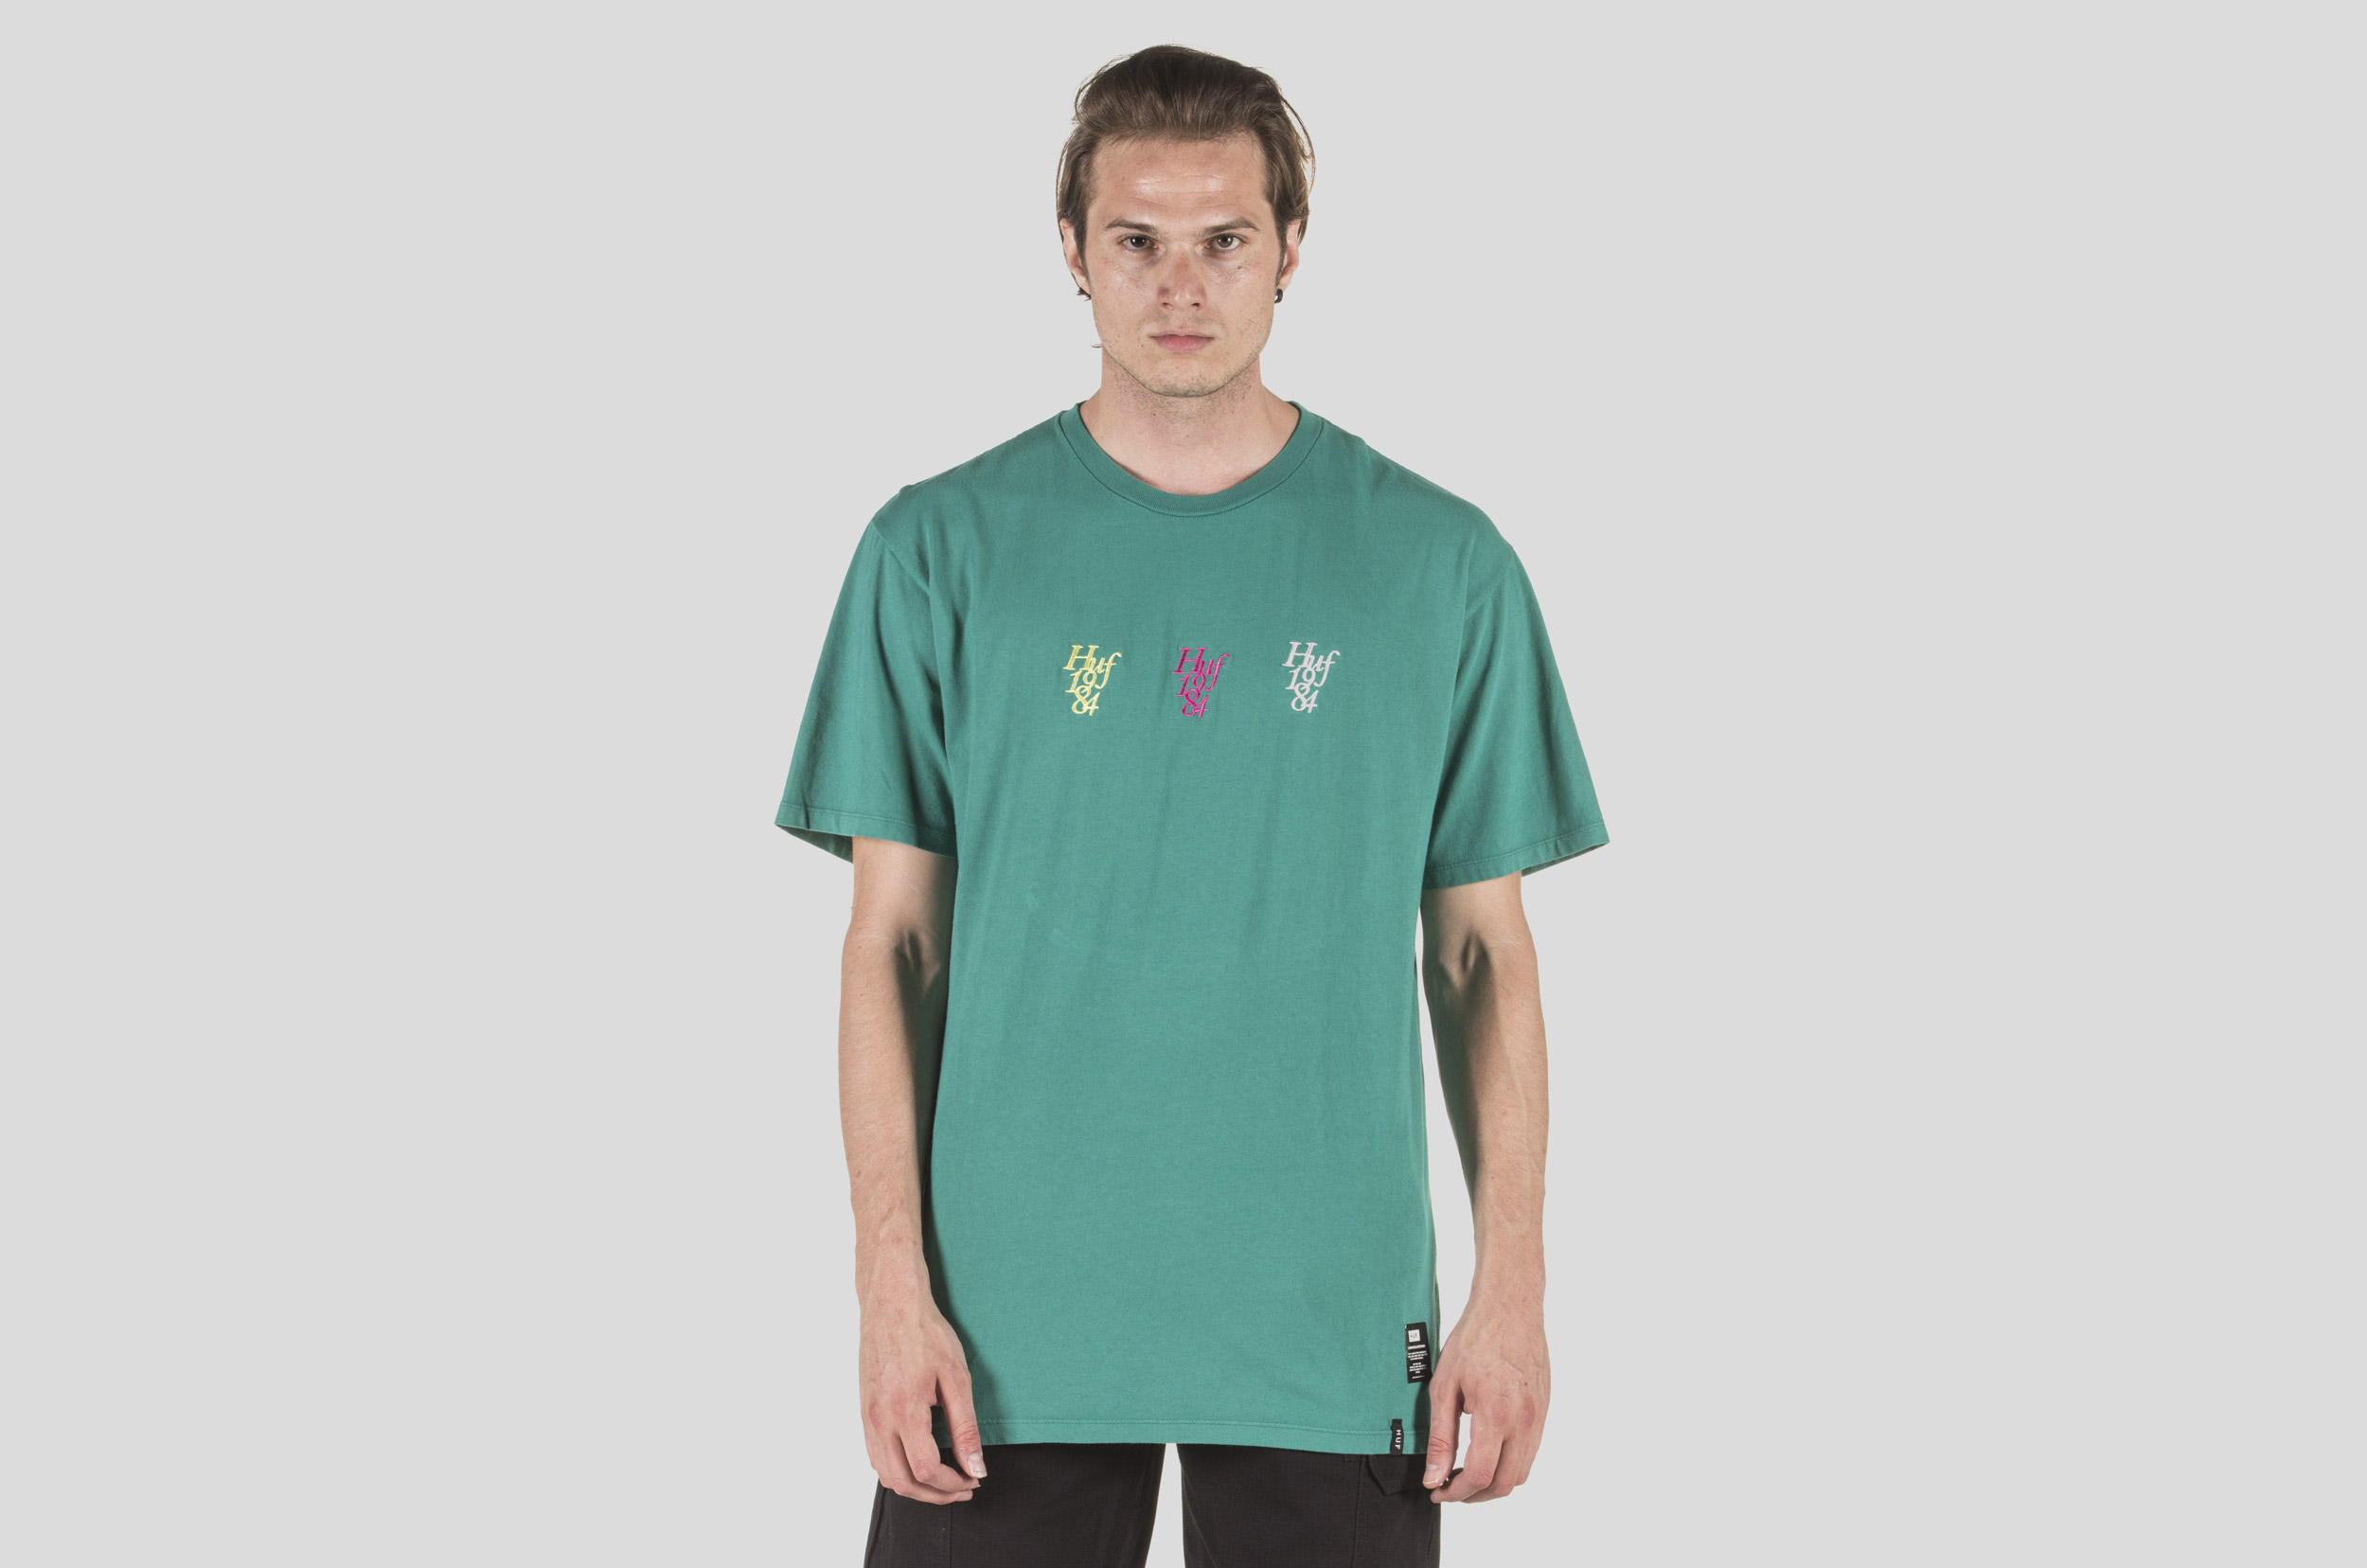 HUF CANAL ST 1984 S/S TEE TS00569-JUNGLE Τιρκουάζ